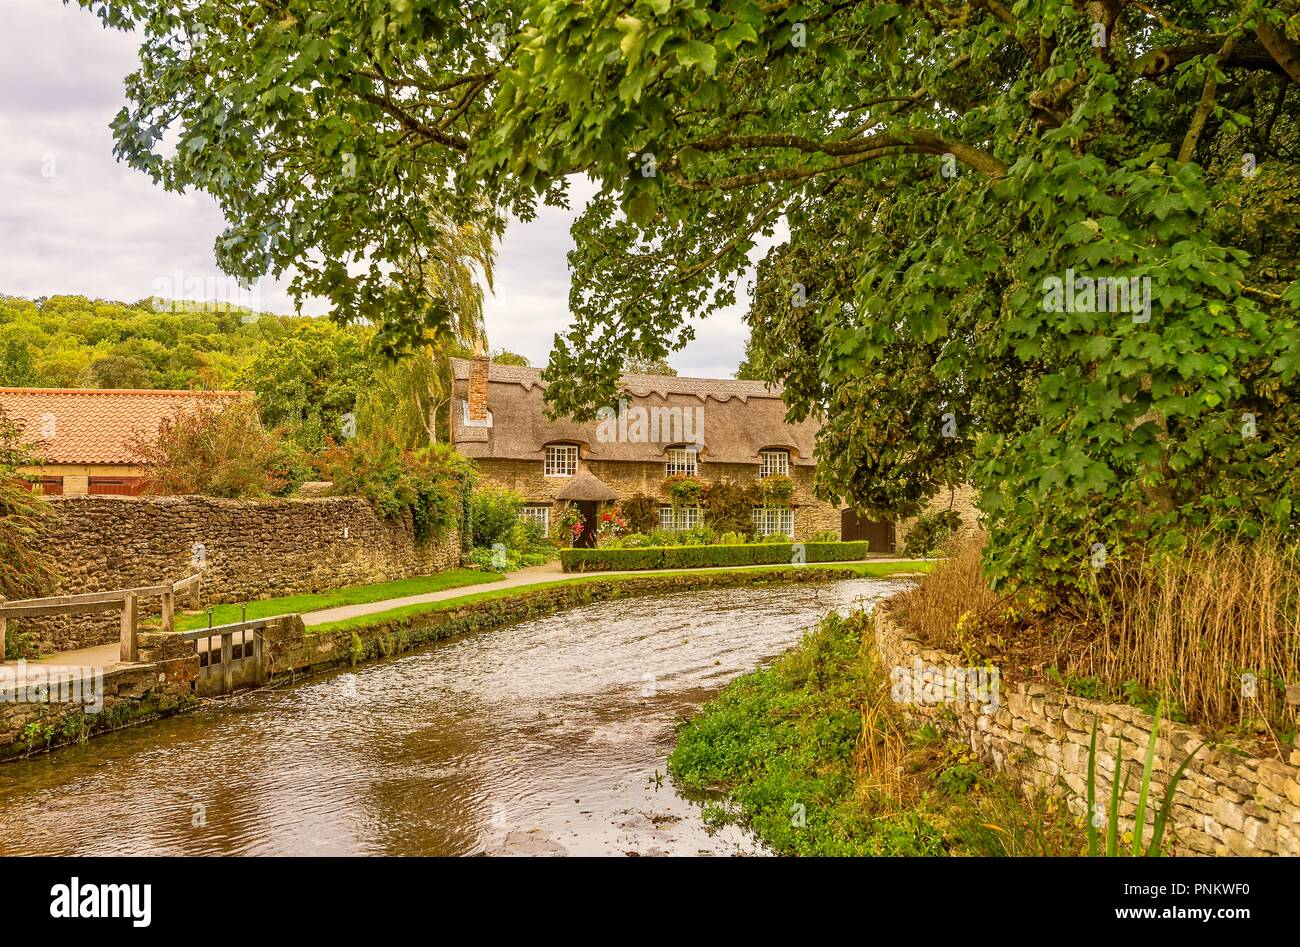 Stone-built picturesque thatched cottage in Thornton-le-Dale, North Yorkshire.  A path follows the curve of the river as it flows passed the house. Stock Photo